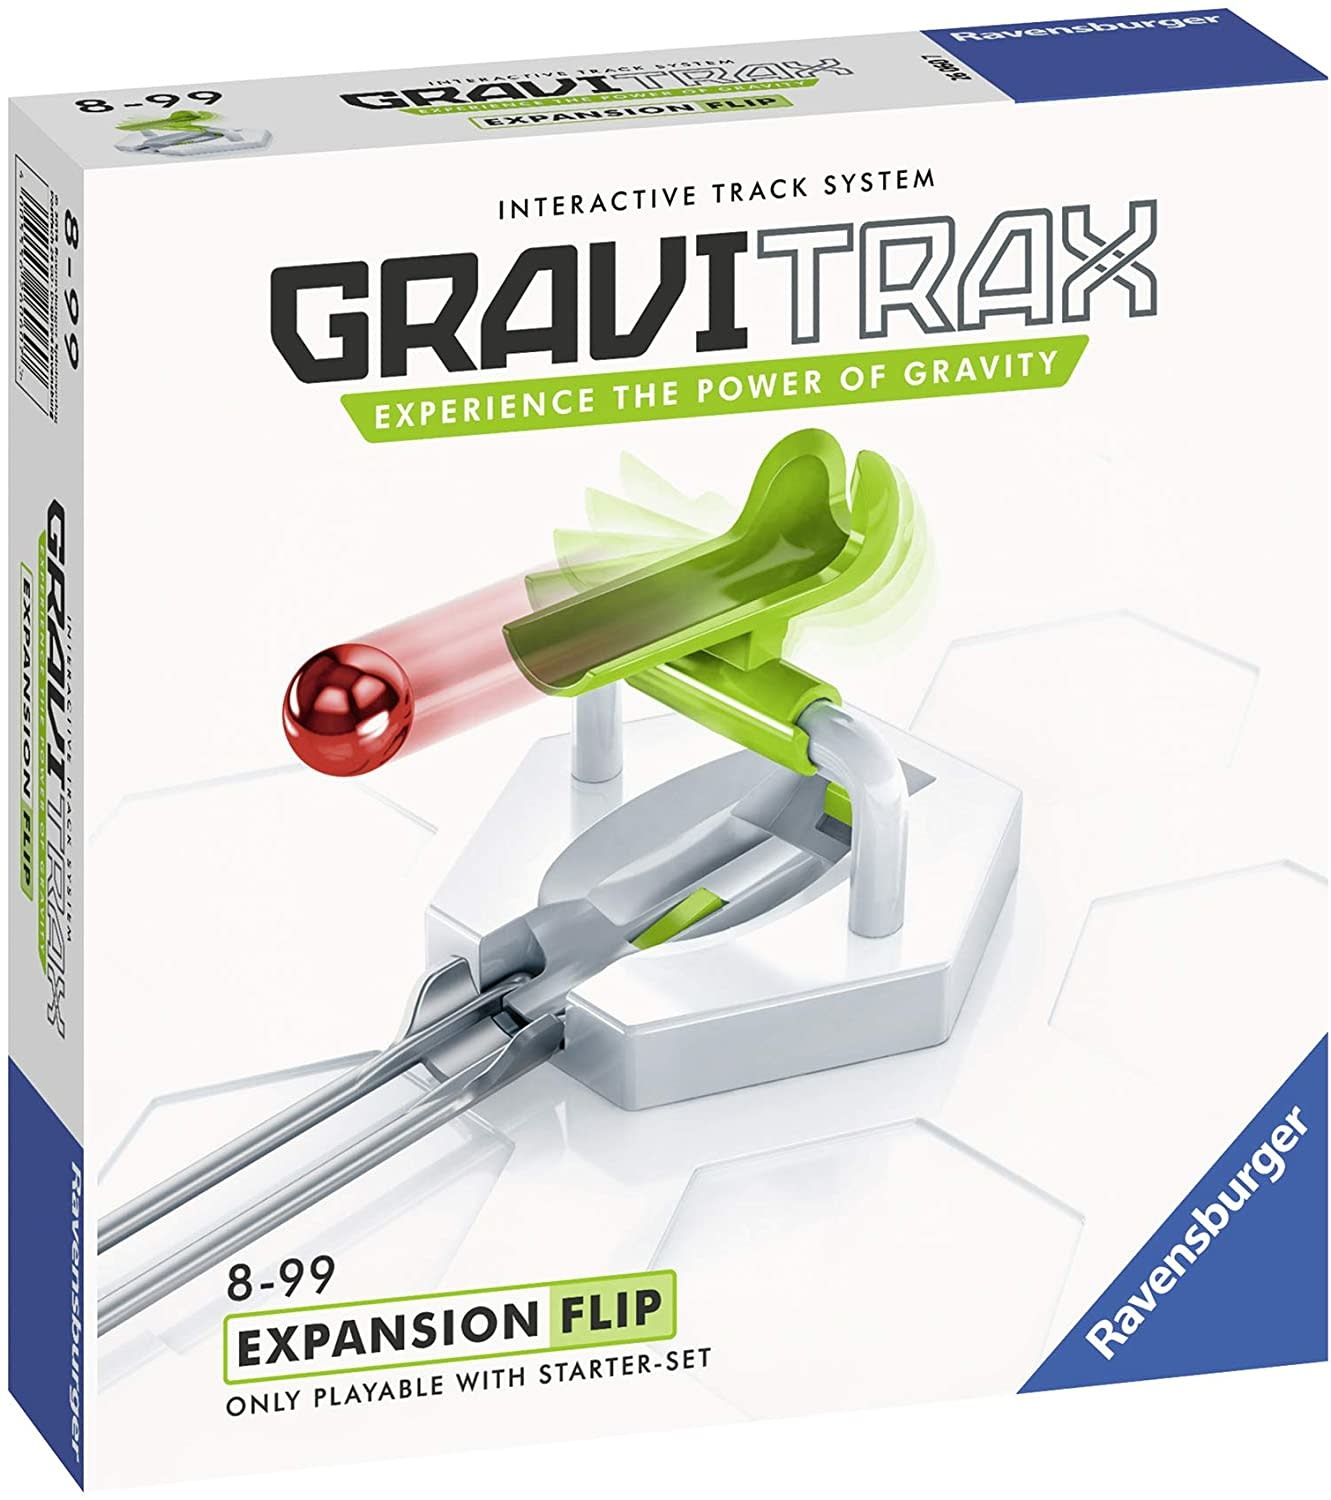 Gravitrax Expansion: Flip